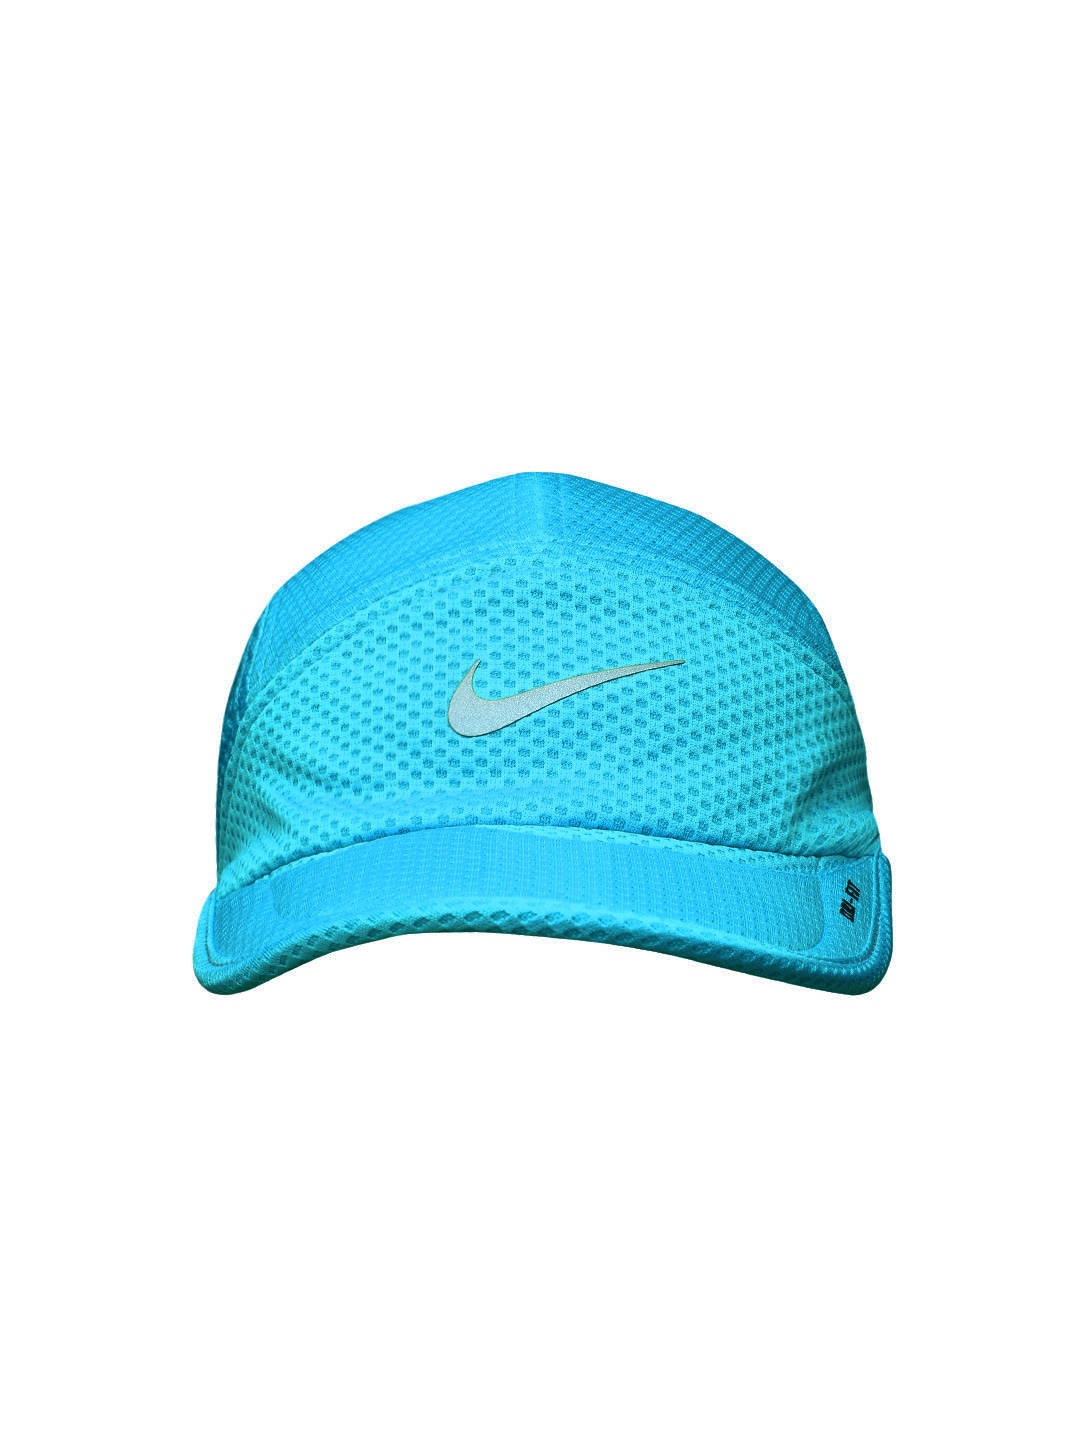 Nike unisex blue run mesh daybreak cap price in india jpg 1080x1440 Nike  mesh daybreak running 4fe3e112ca7